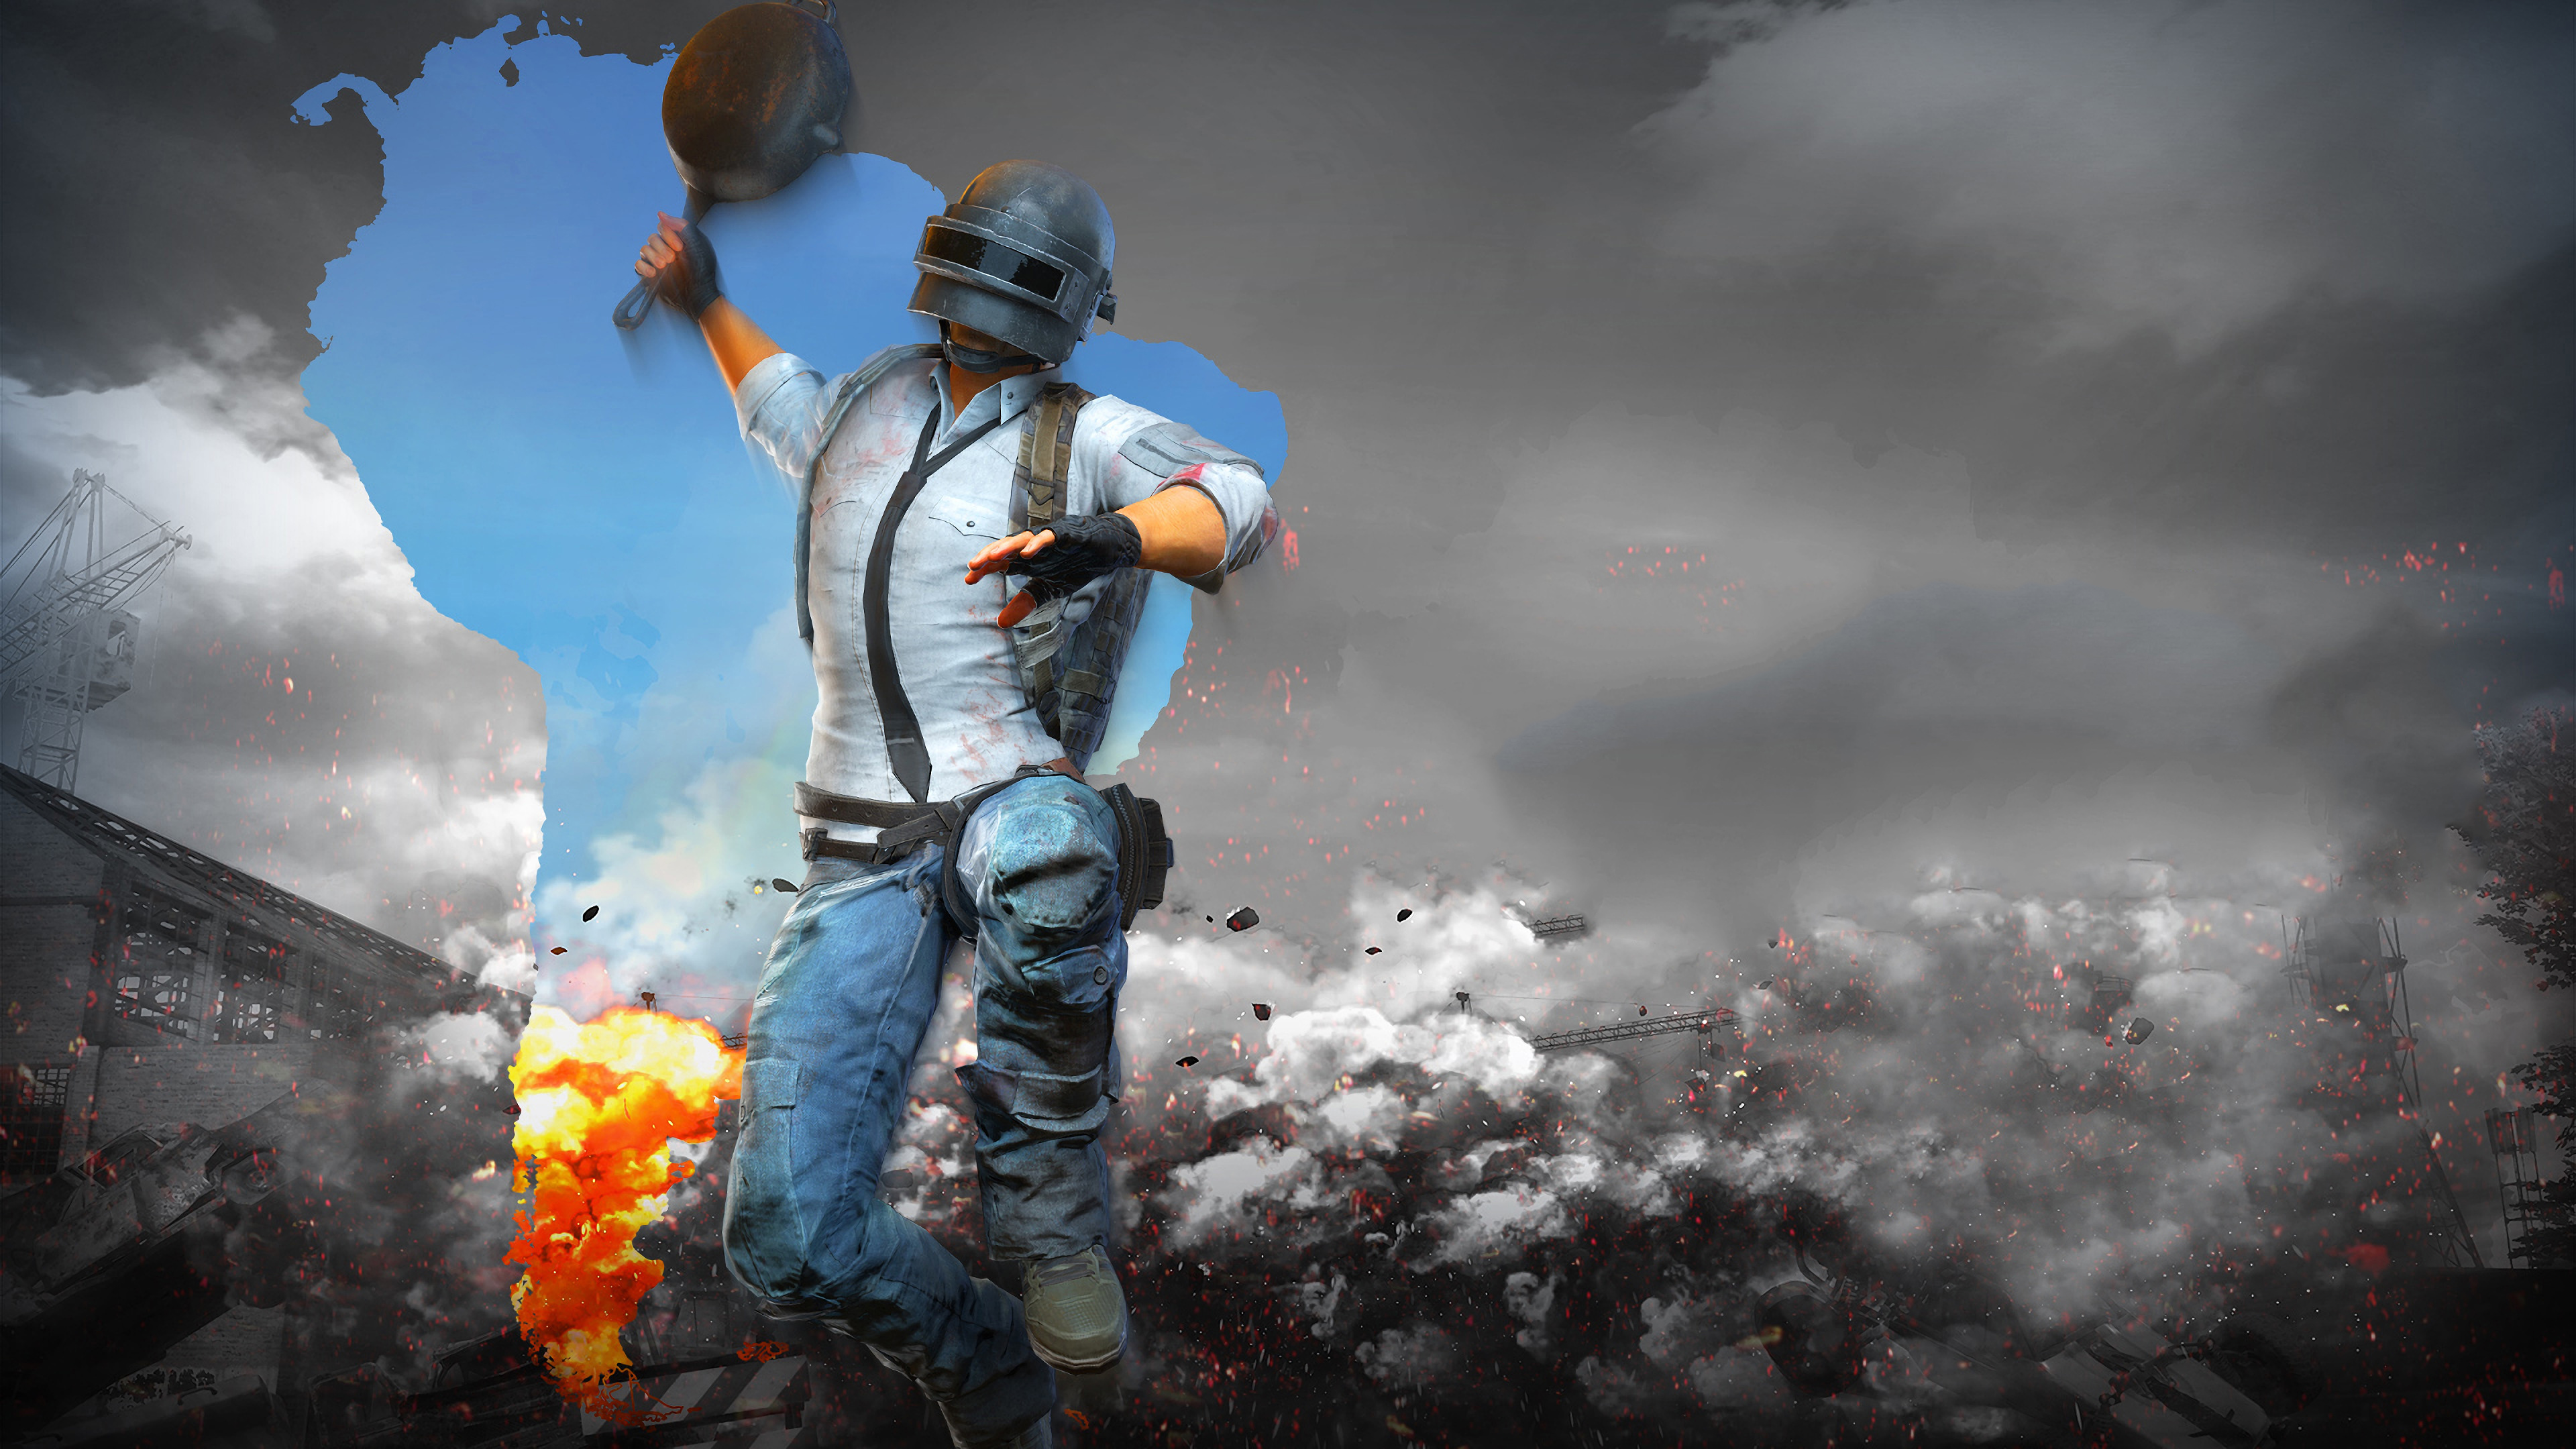 Pubg Helmet Man With Pan 4k Hd Games 4k Wallpapers